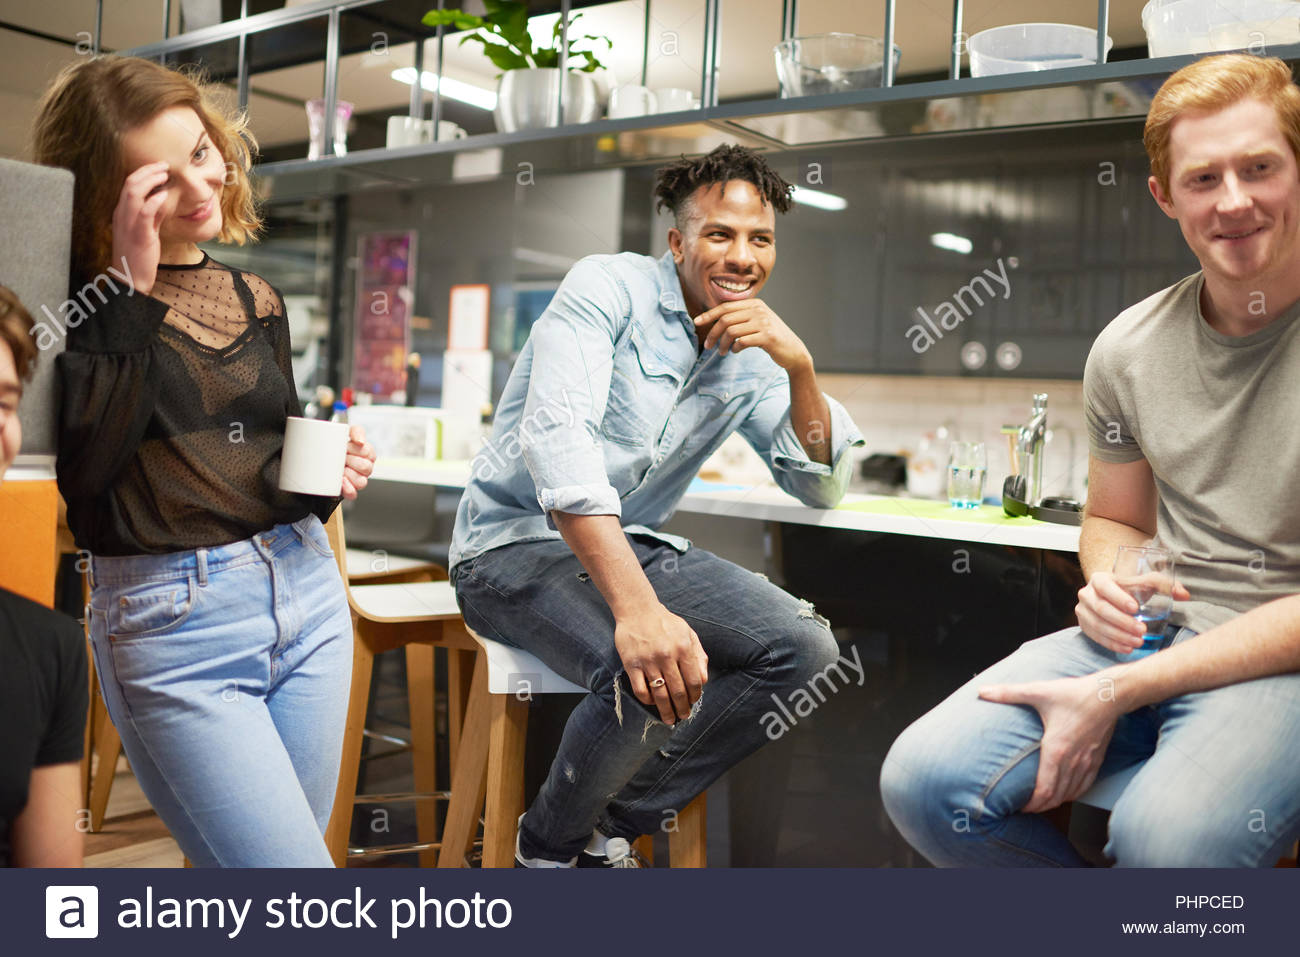 Colleagues talking in office kitchen - Stock Image